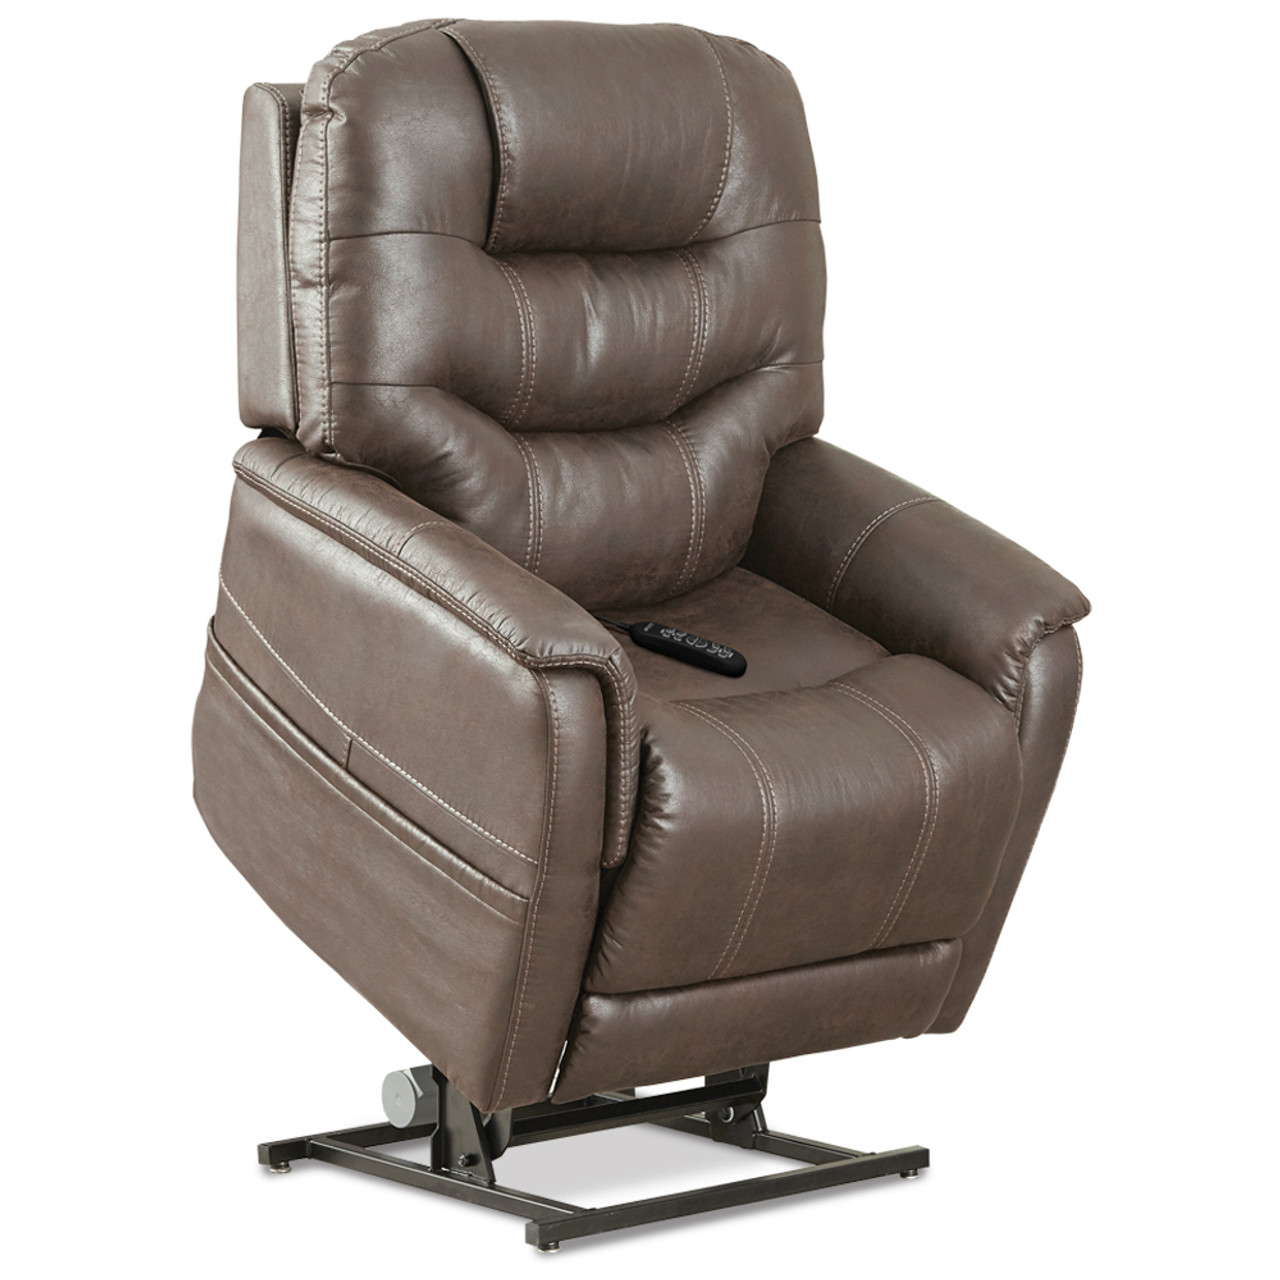 VivaLift Elegance Lift Chair by Pride Mobility